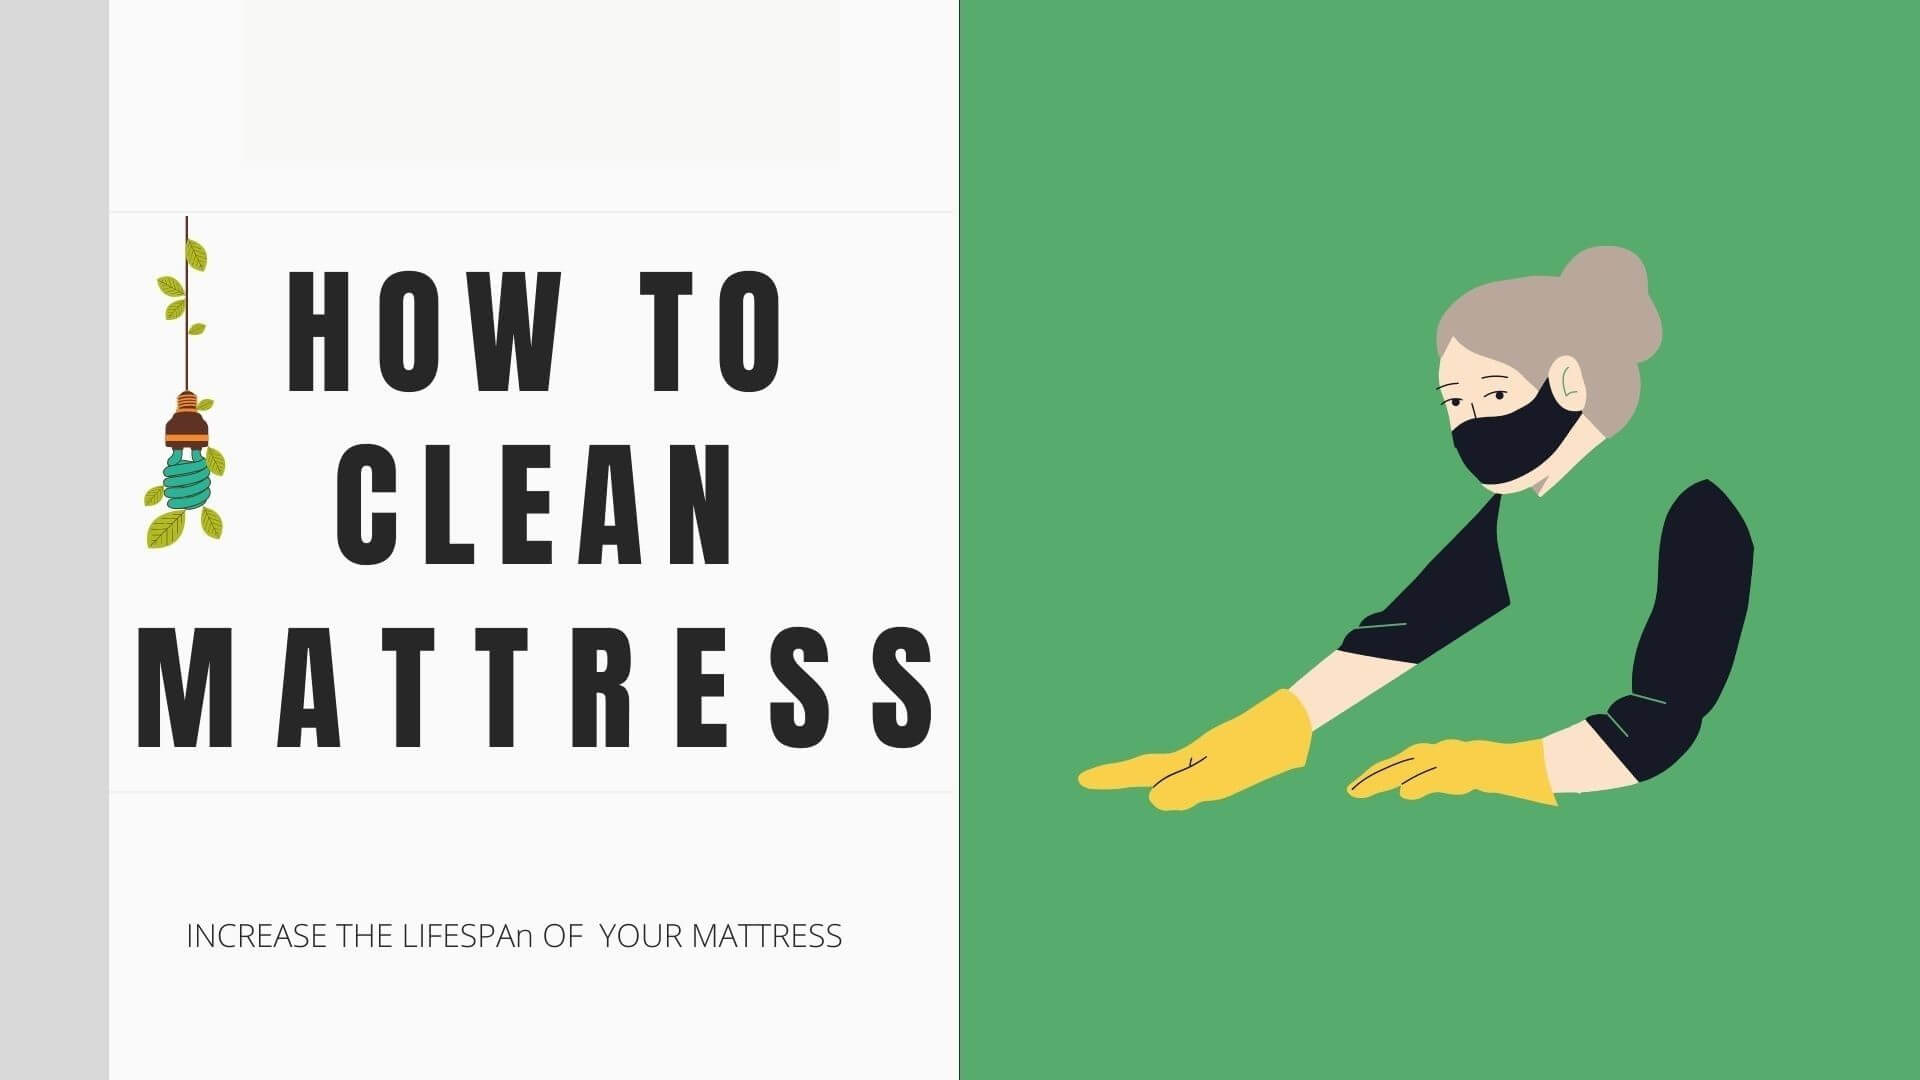 How to Clean Mattresses